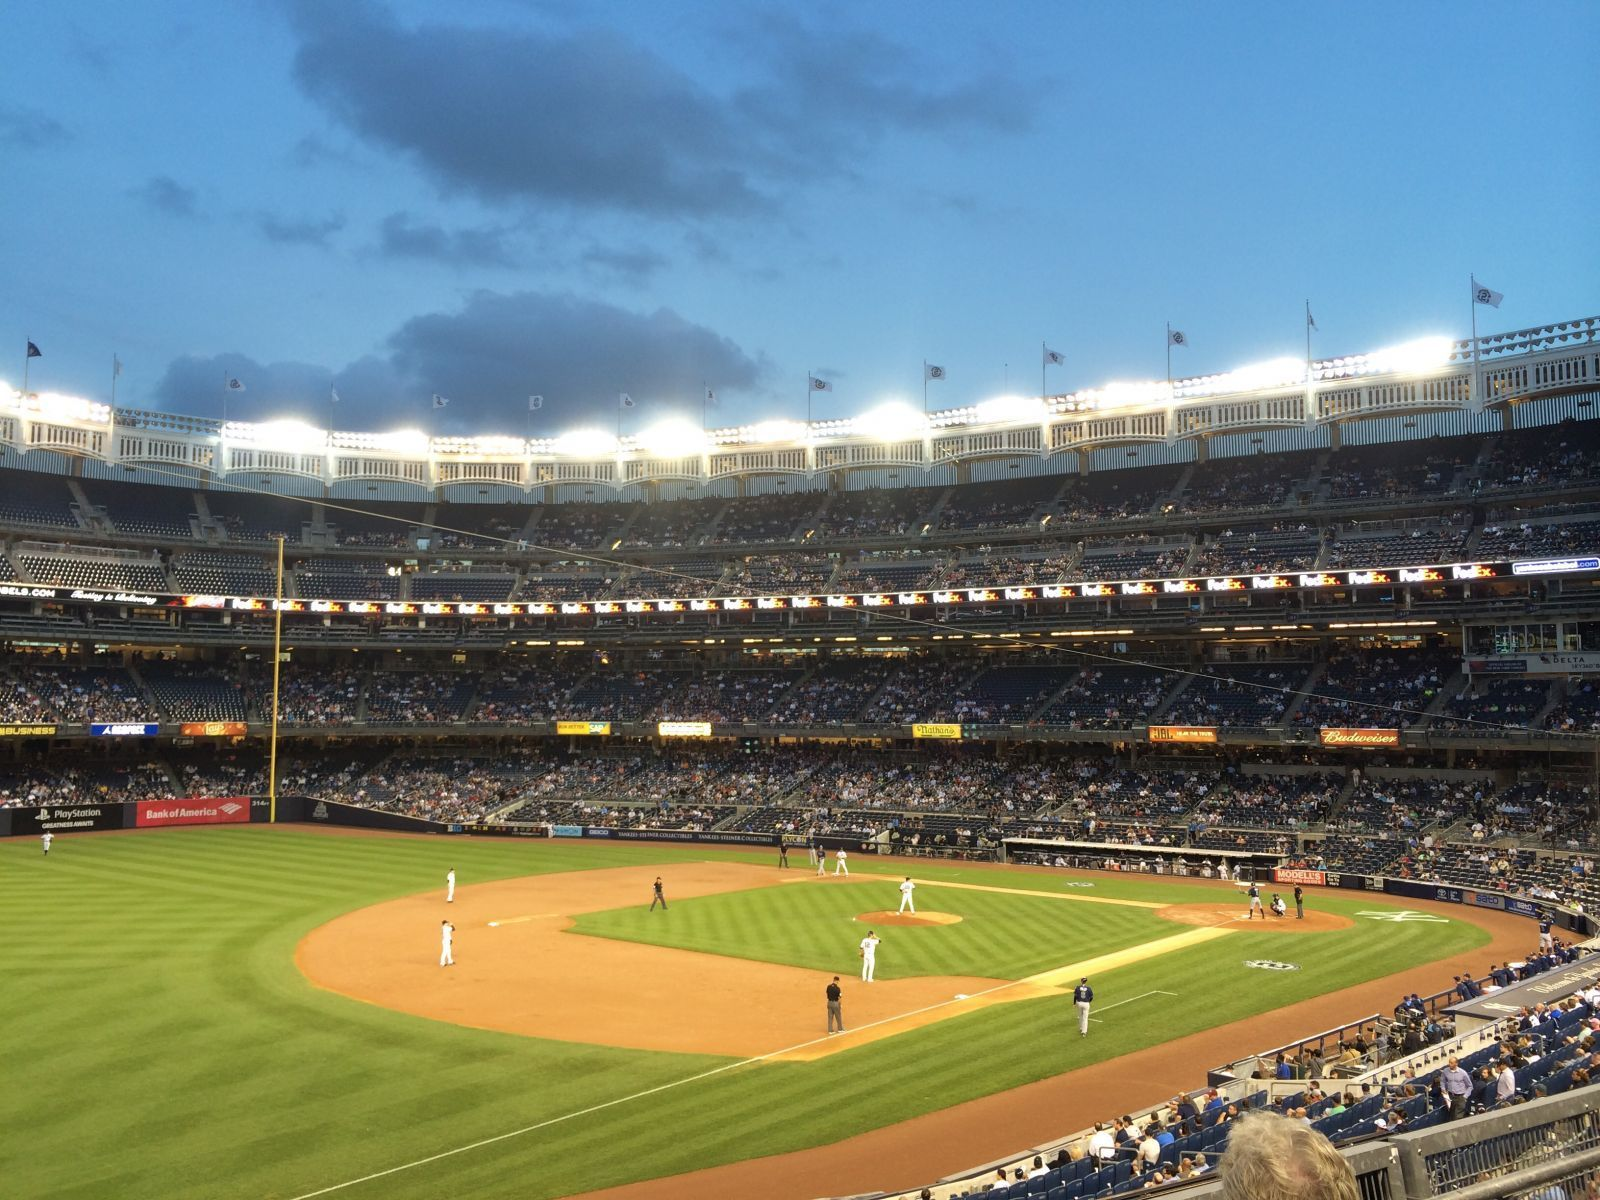 New York Yankees Seat View for Yankee Stadium Section 228, Row 3, Seat 12